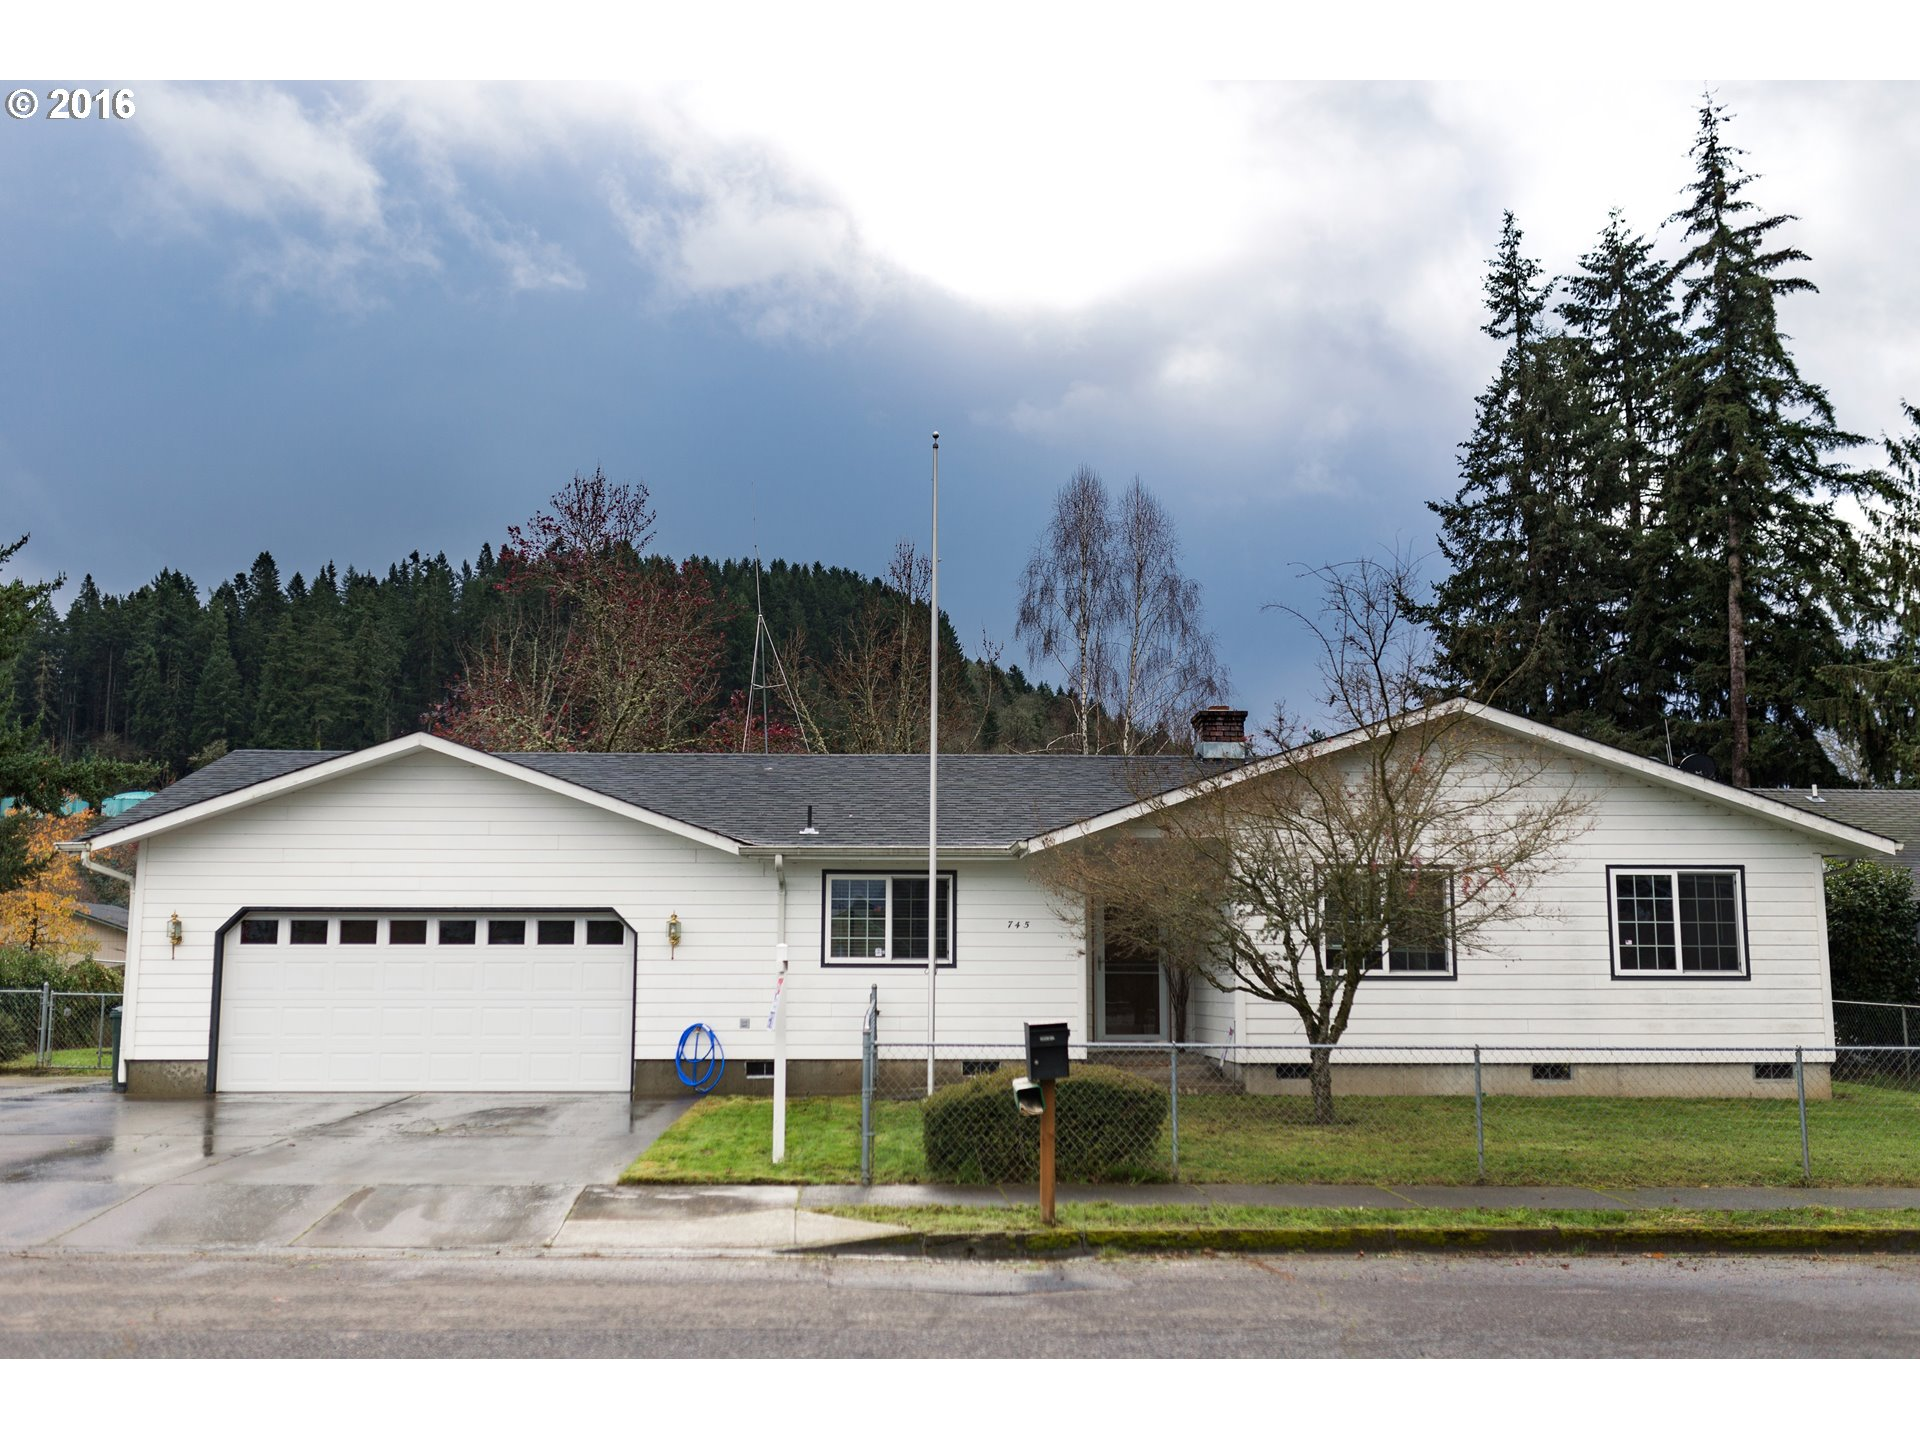 745 EVERGREEN DR, Creswell, OR 97426